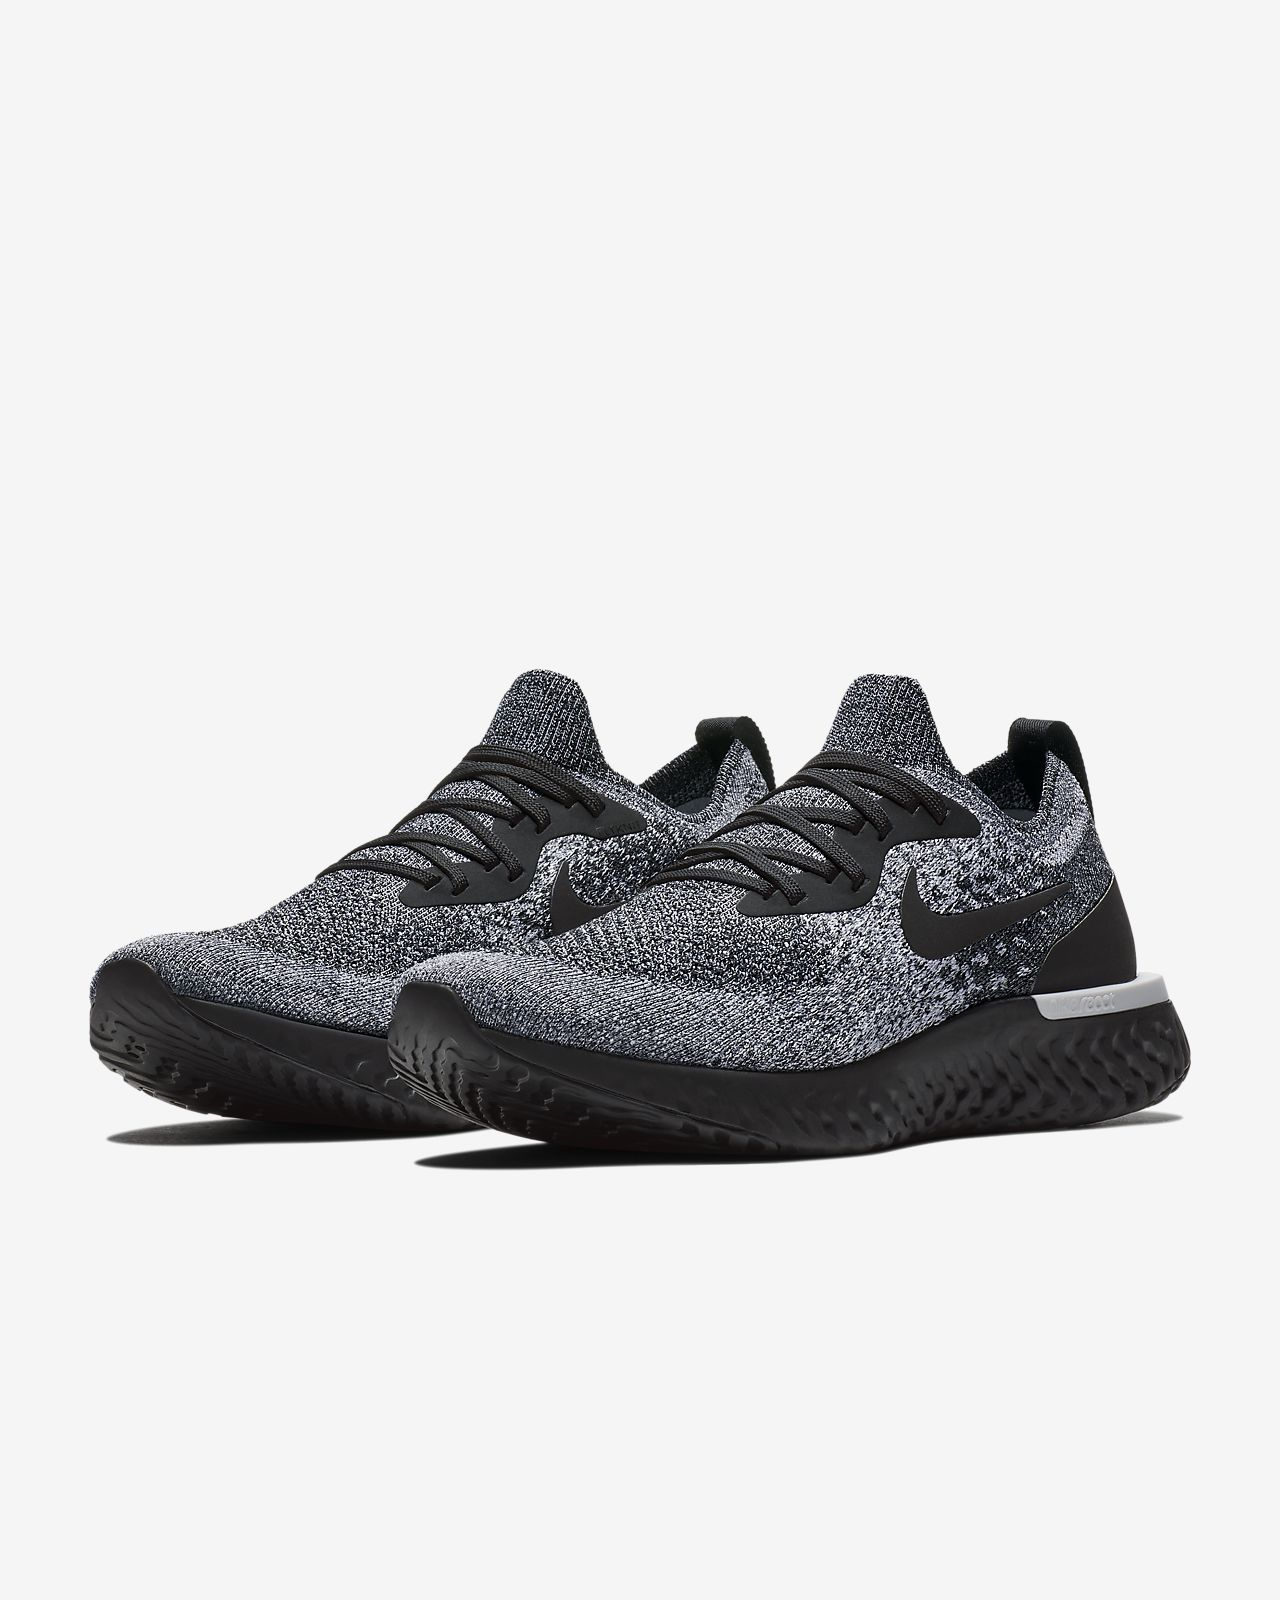 new product 68d89 42ca1 Men s Running Shoe. Nike Epic React Flyknit